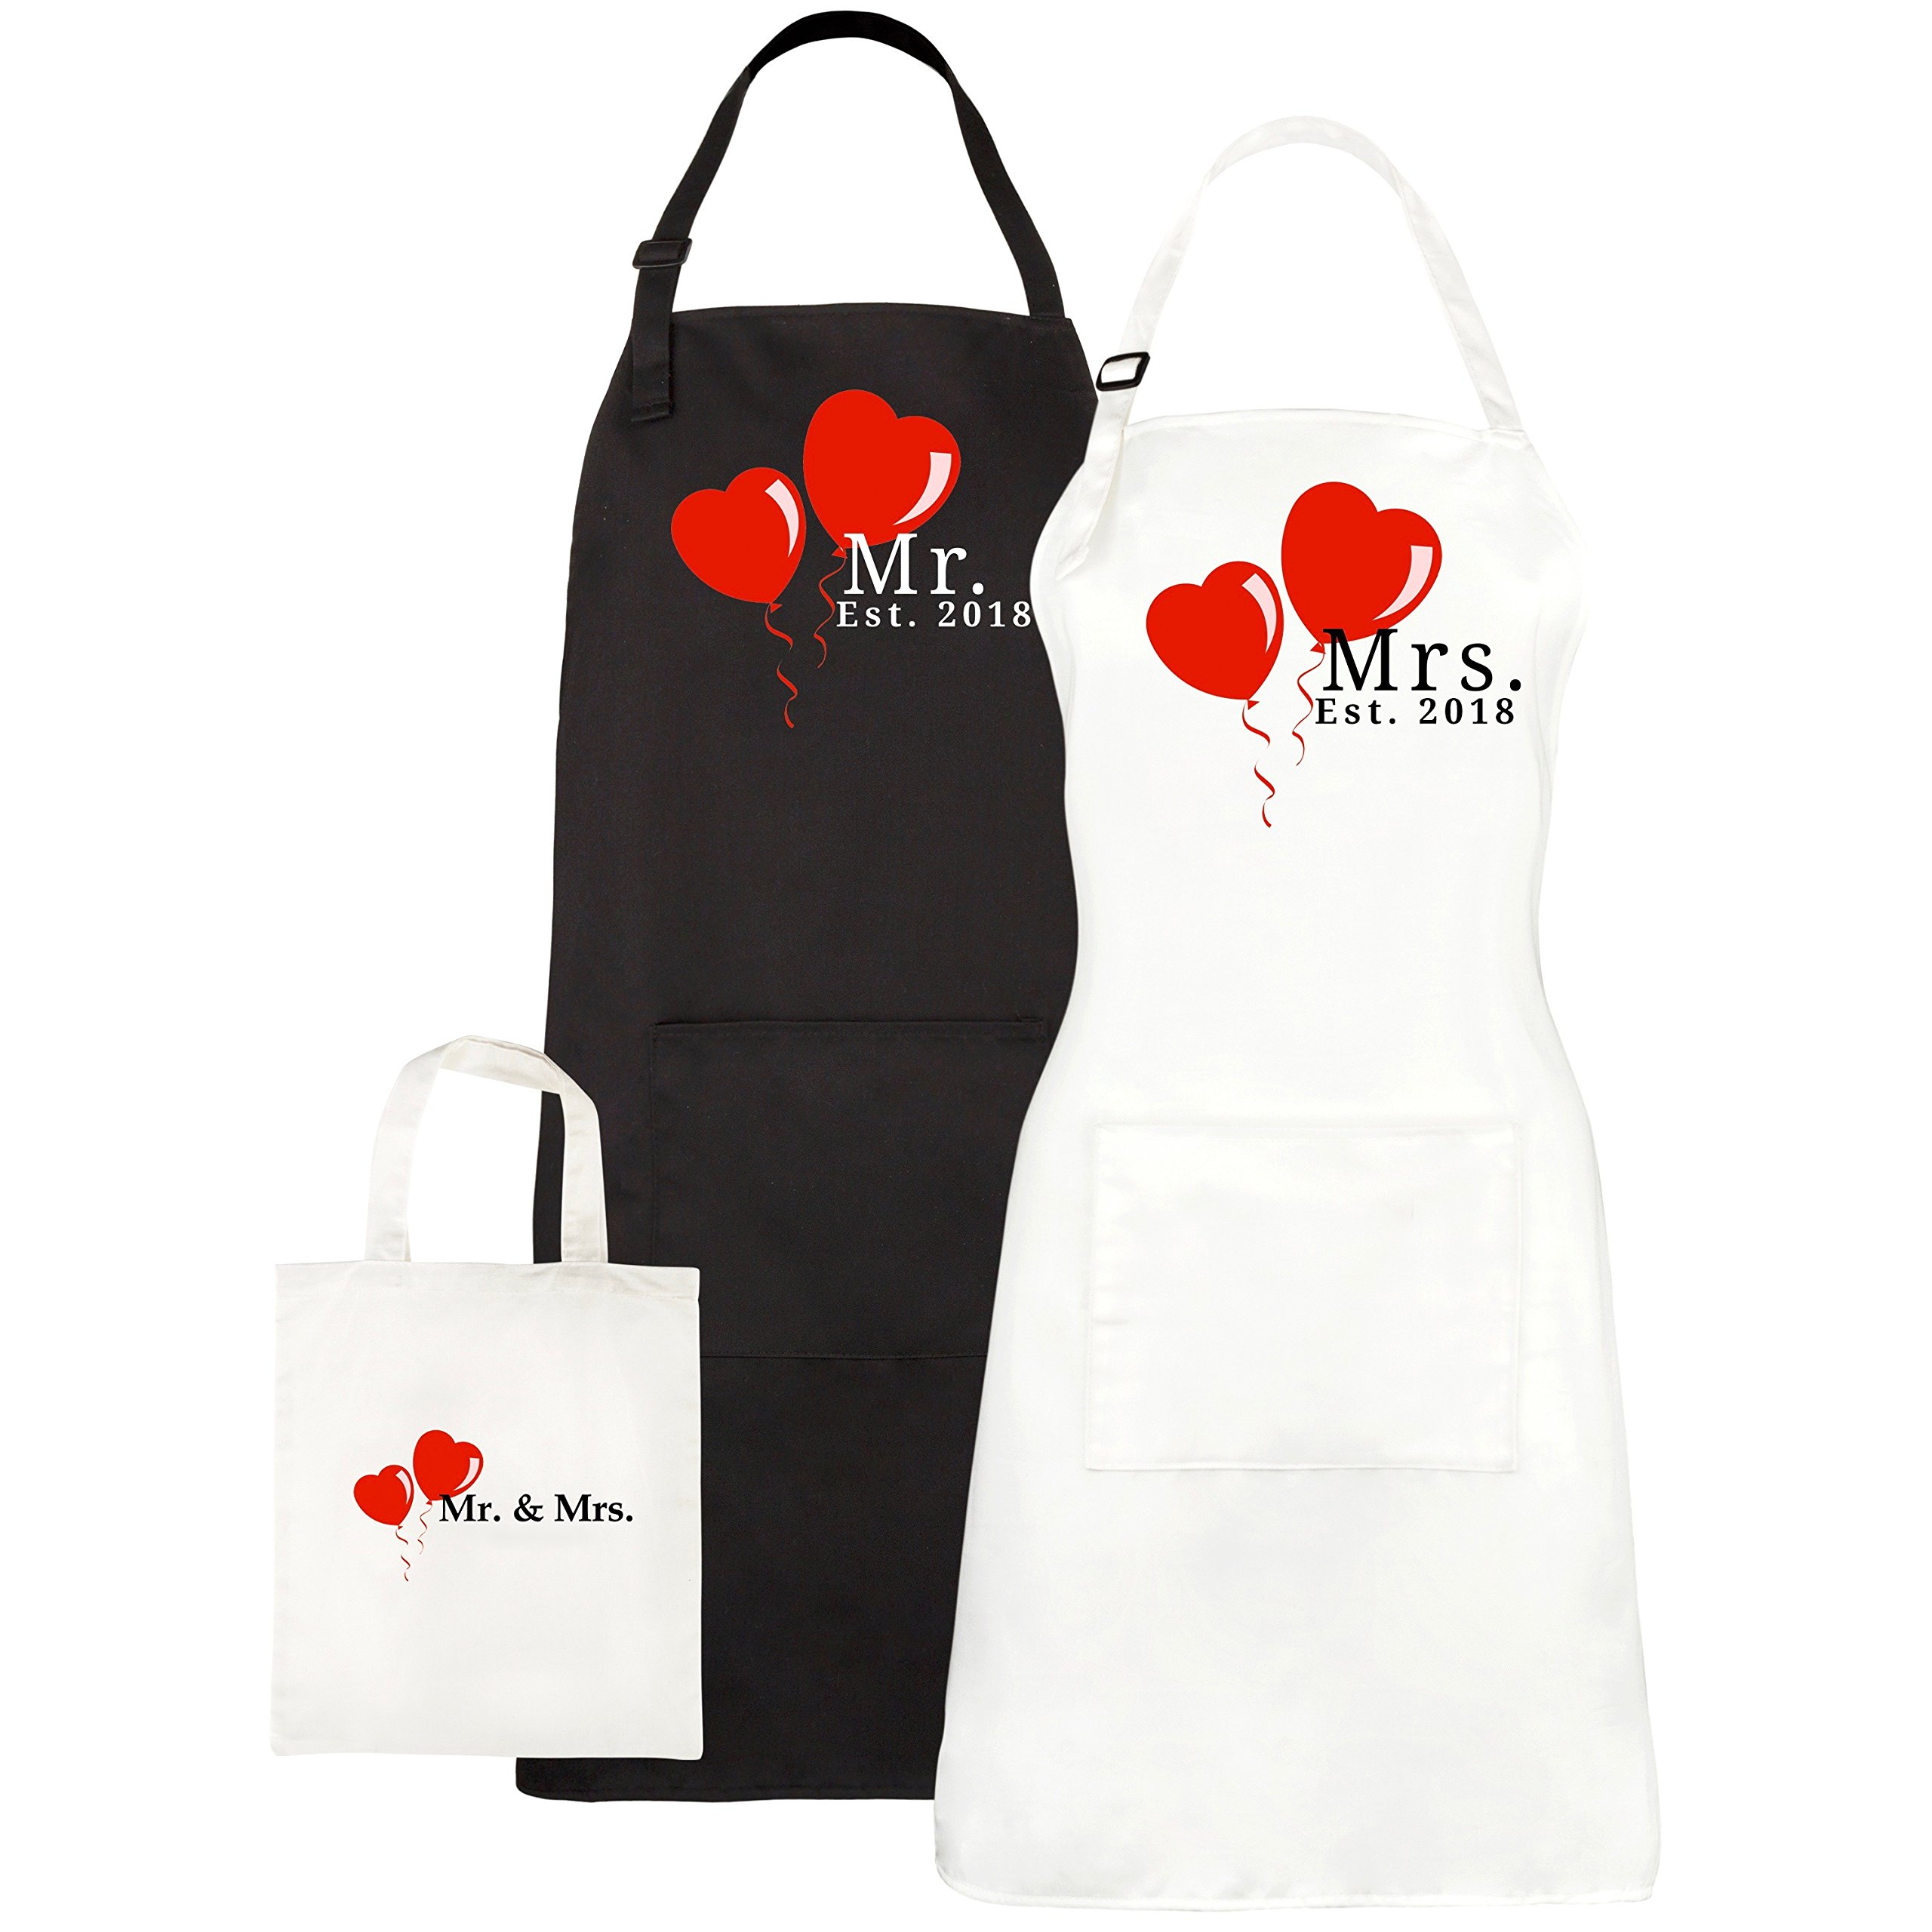 Mr. and Mrs. Aprons Est. 2018, His Hers Wedding Gifts For Couples - Bridal Shower Engagement Gift Set - With Pocket and Gift Bag By Let the Fun Begin